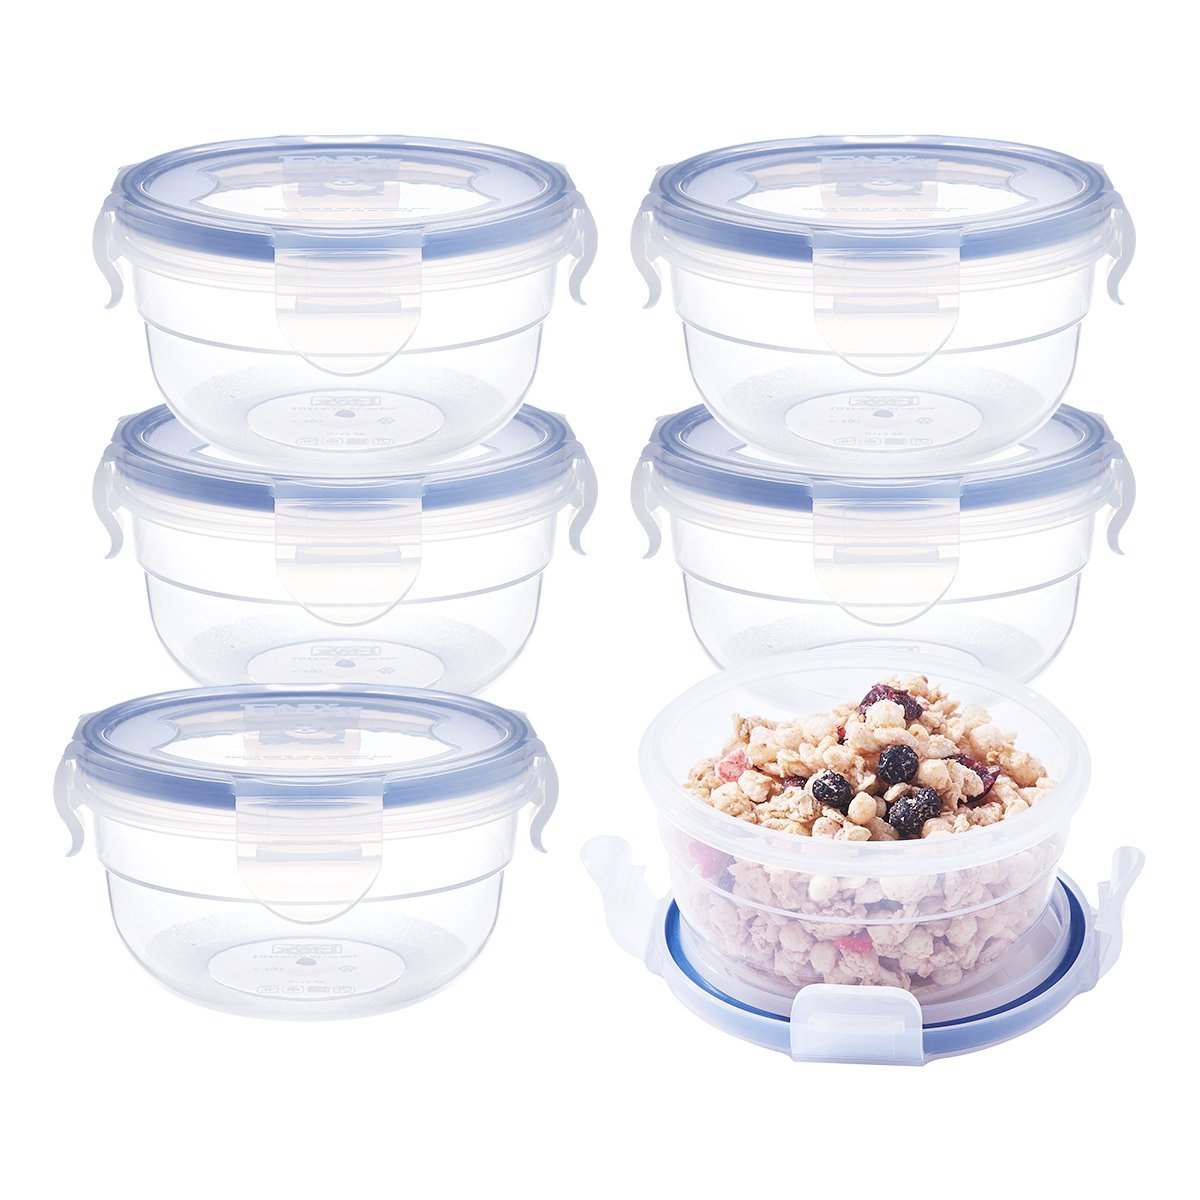 6 Pack Baby Food Storage Containers Bowls (10.1oz), Airtight Snap Locking Lids, Reusable and BPA Free Plastic Meal Prep Containers for Kids, Microwave Freezer Safe